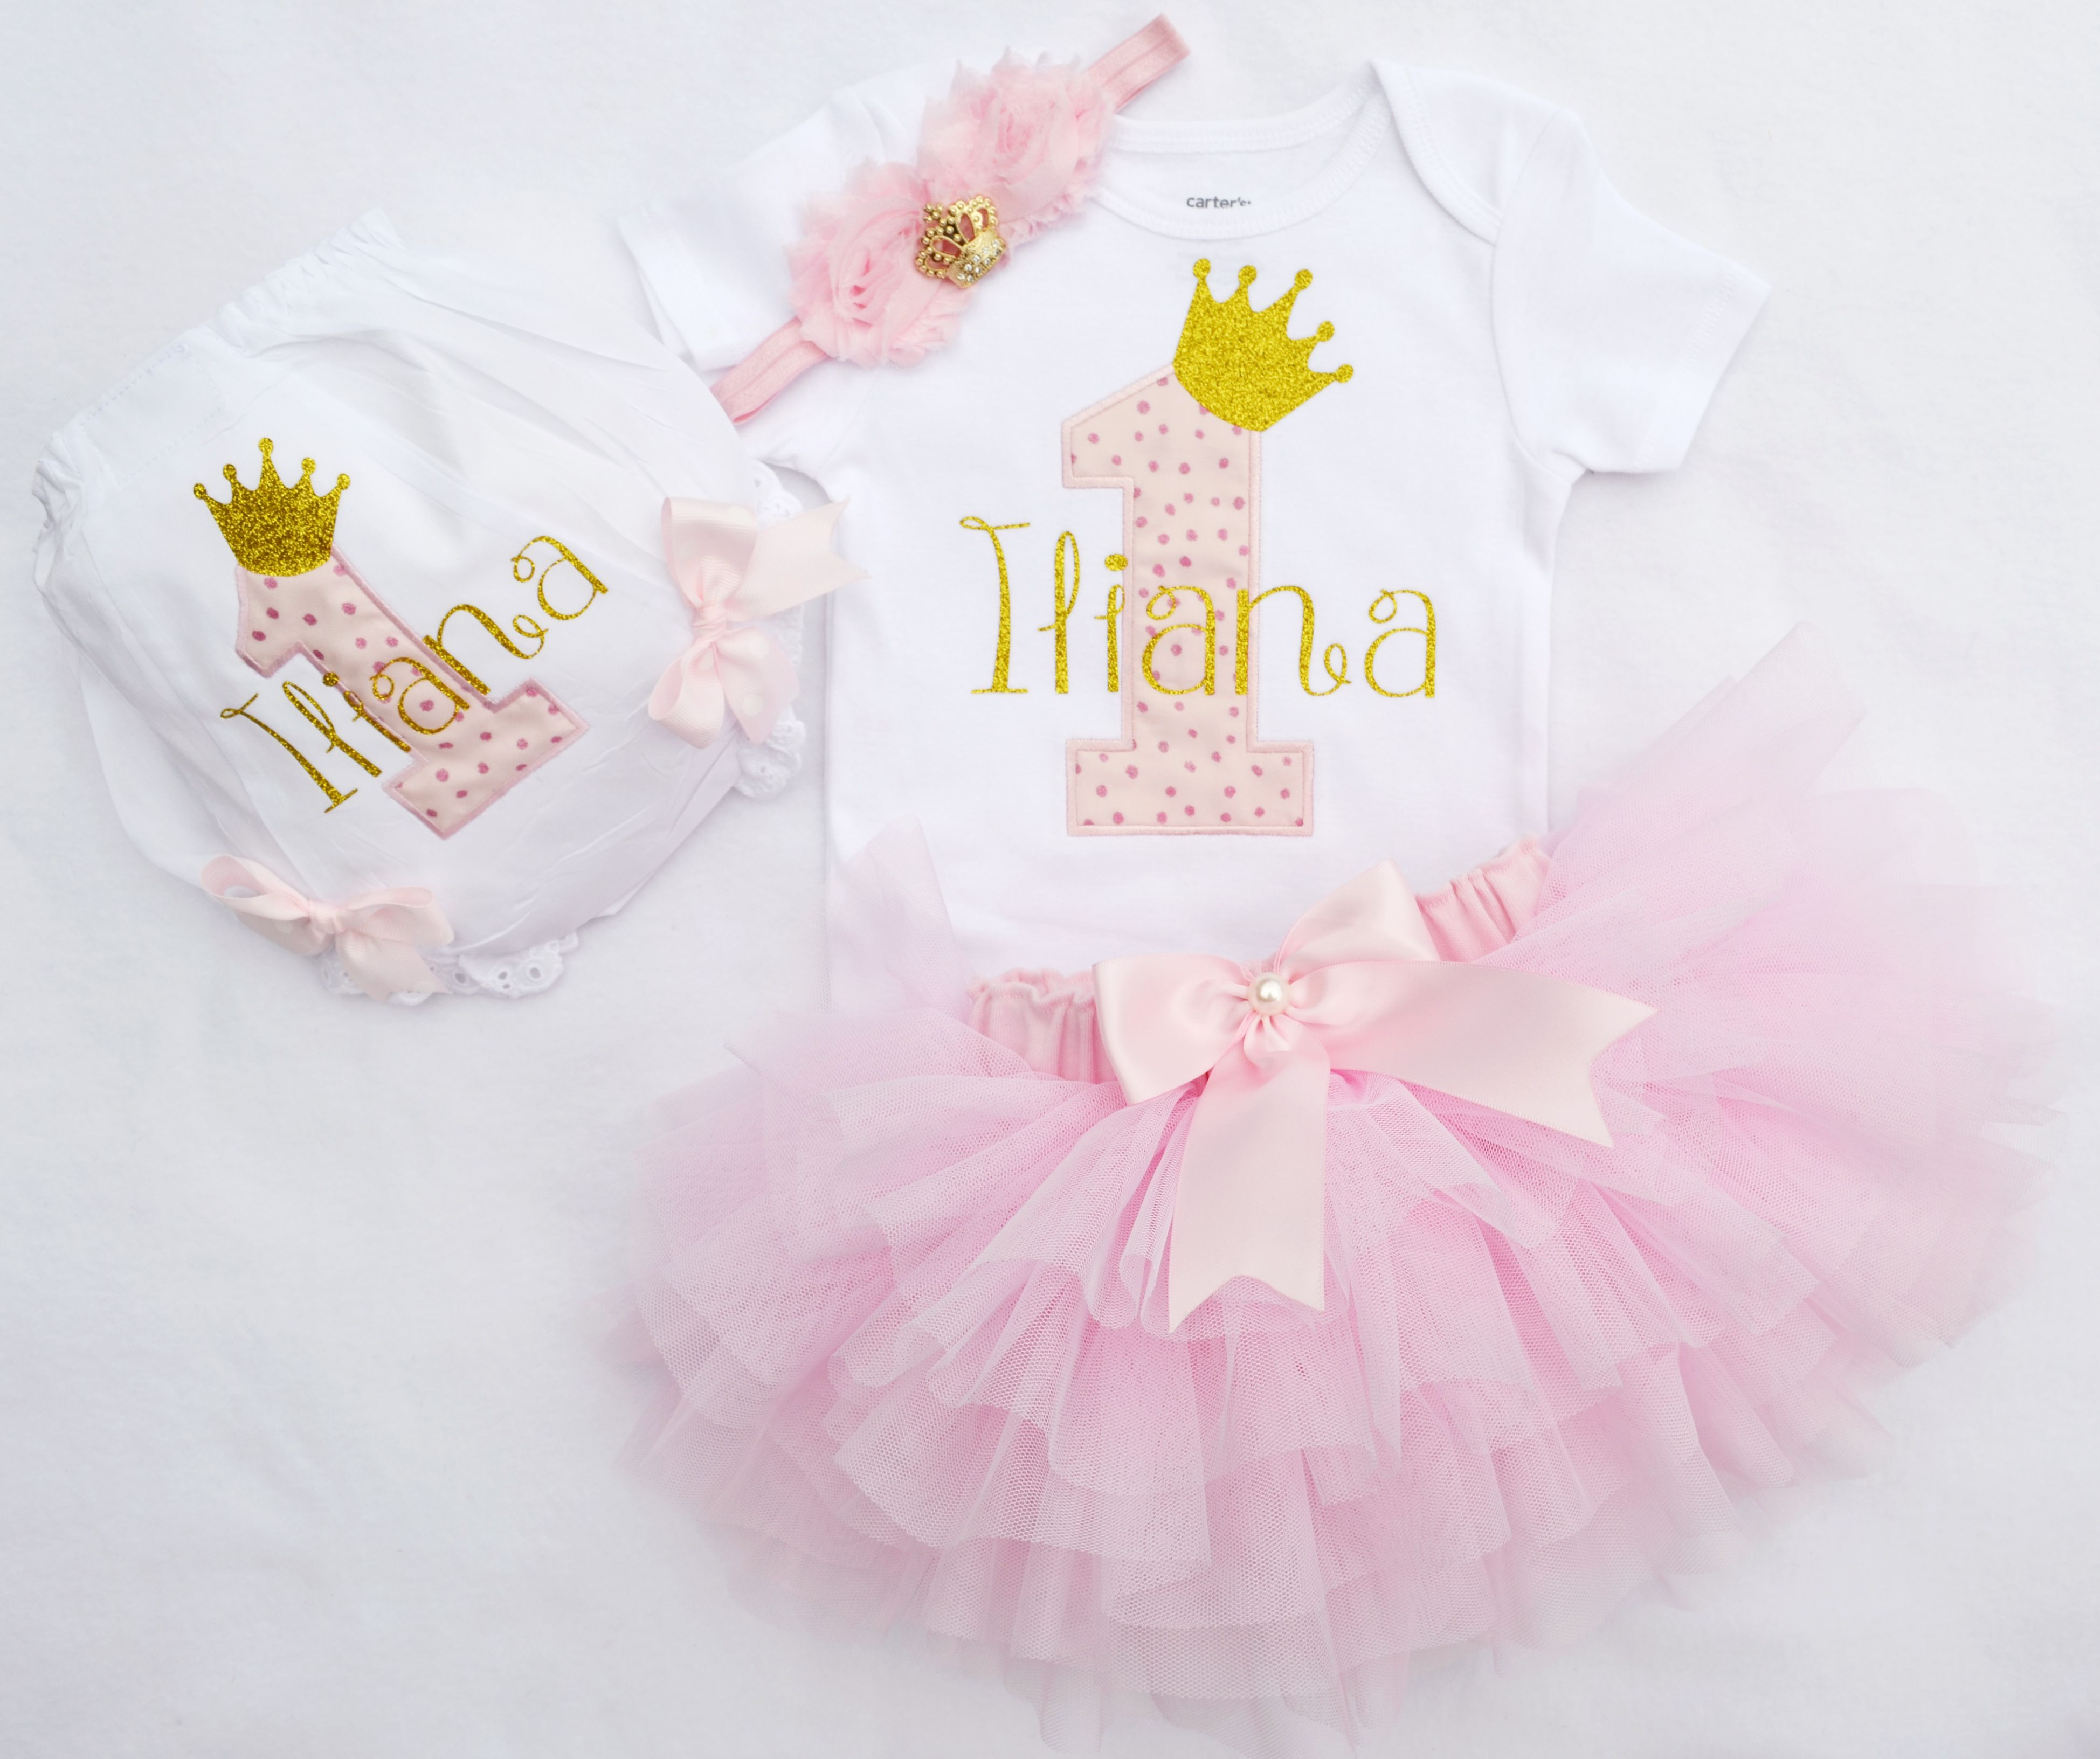 4pc. Girl Pink gold first birthday outfit Birthday Outfit,Birthday tutu,1st Birthday Outfit,Girls Birthday set,Gold Birthday Outfit